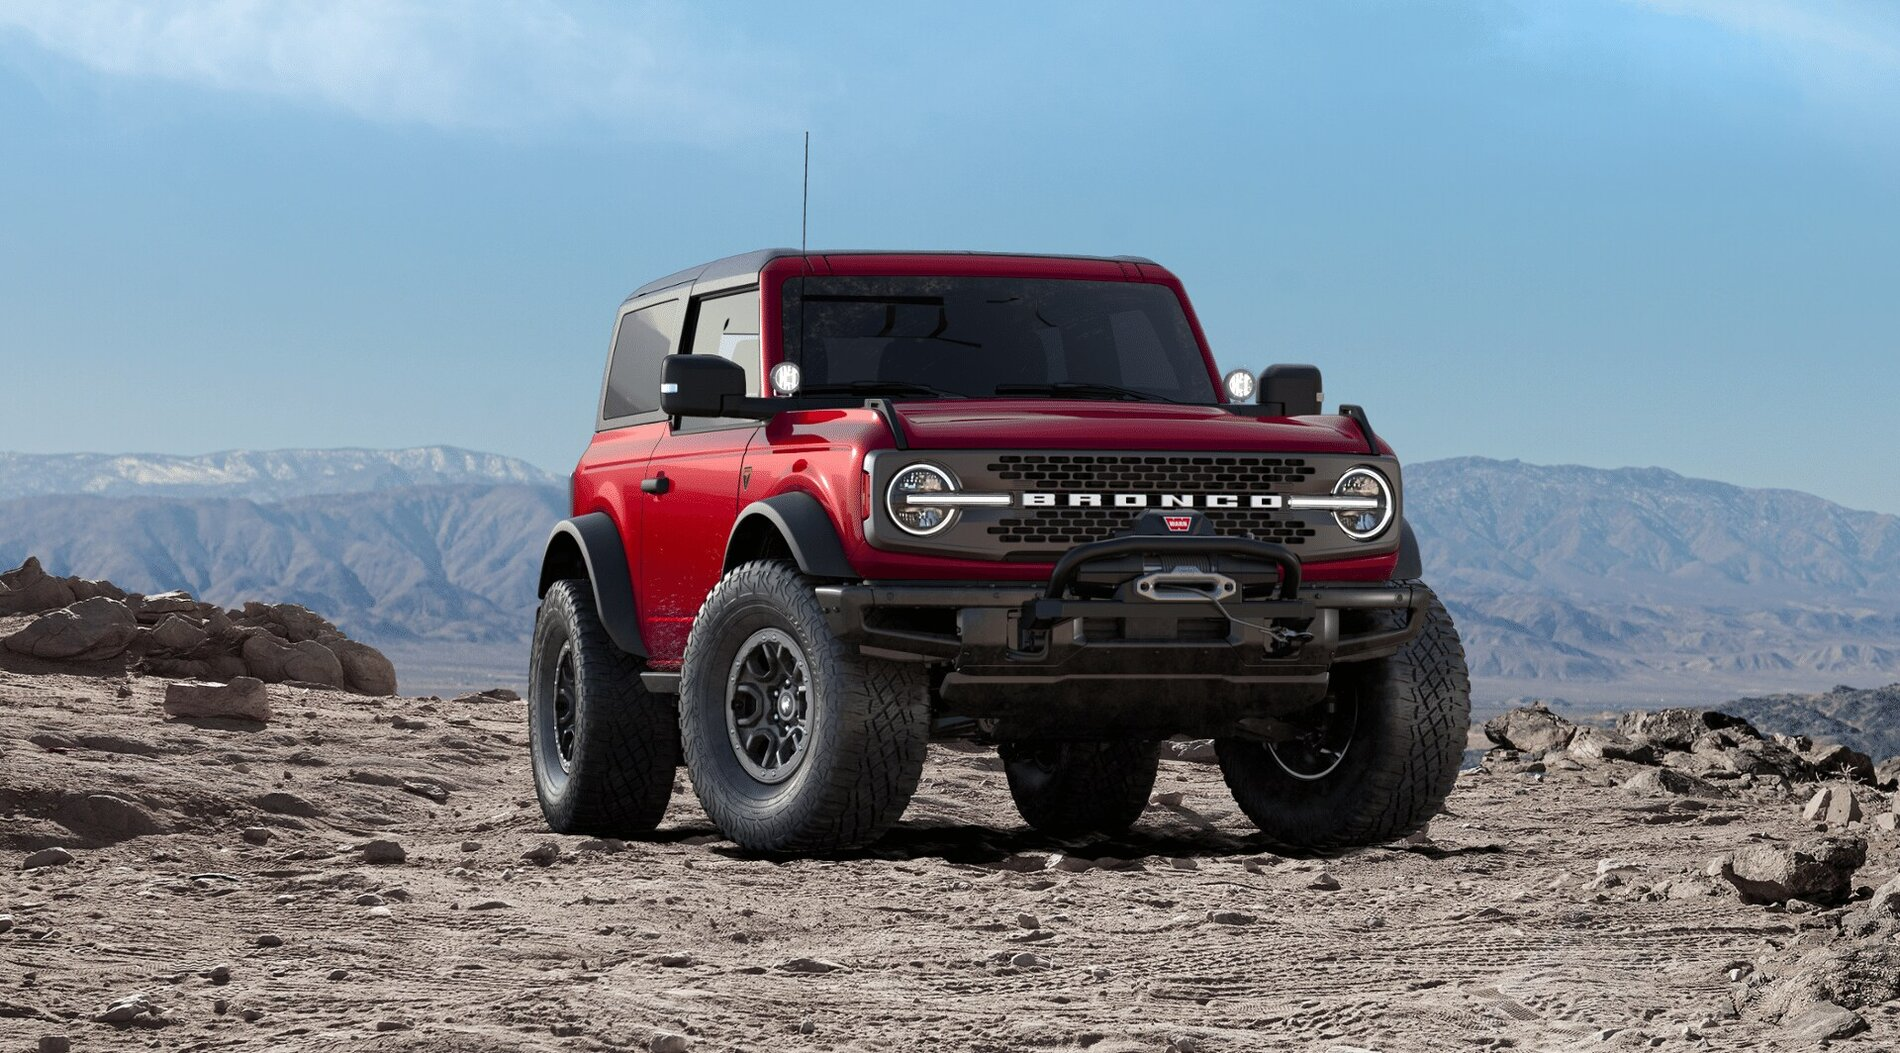 2021 BRONCO FRONT WITH WINCH.jpg